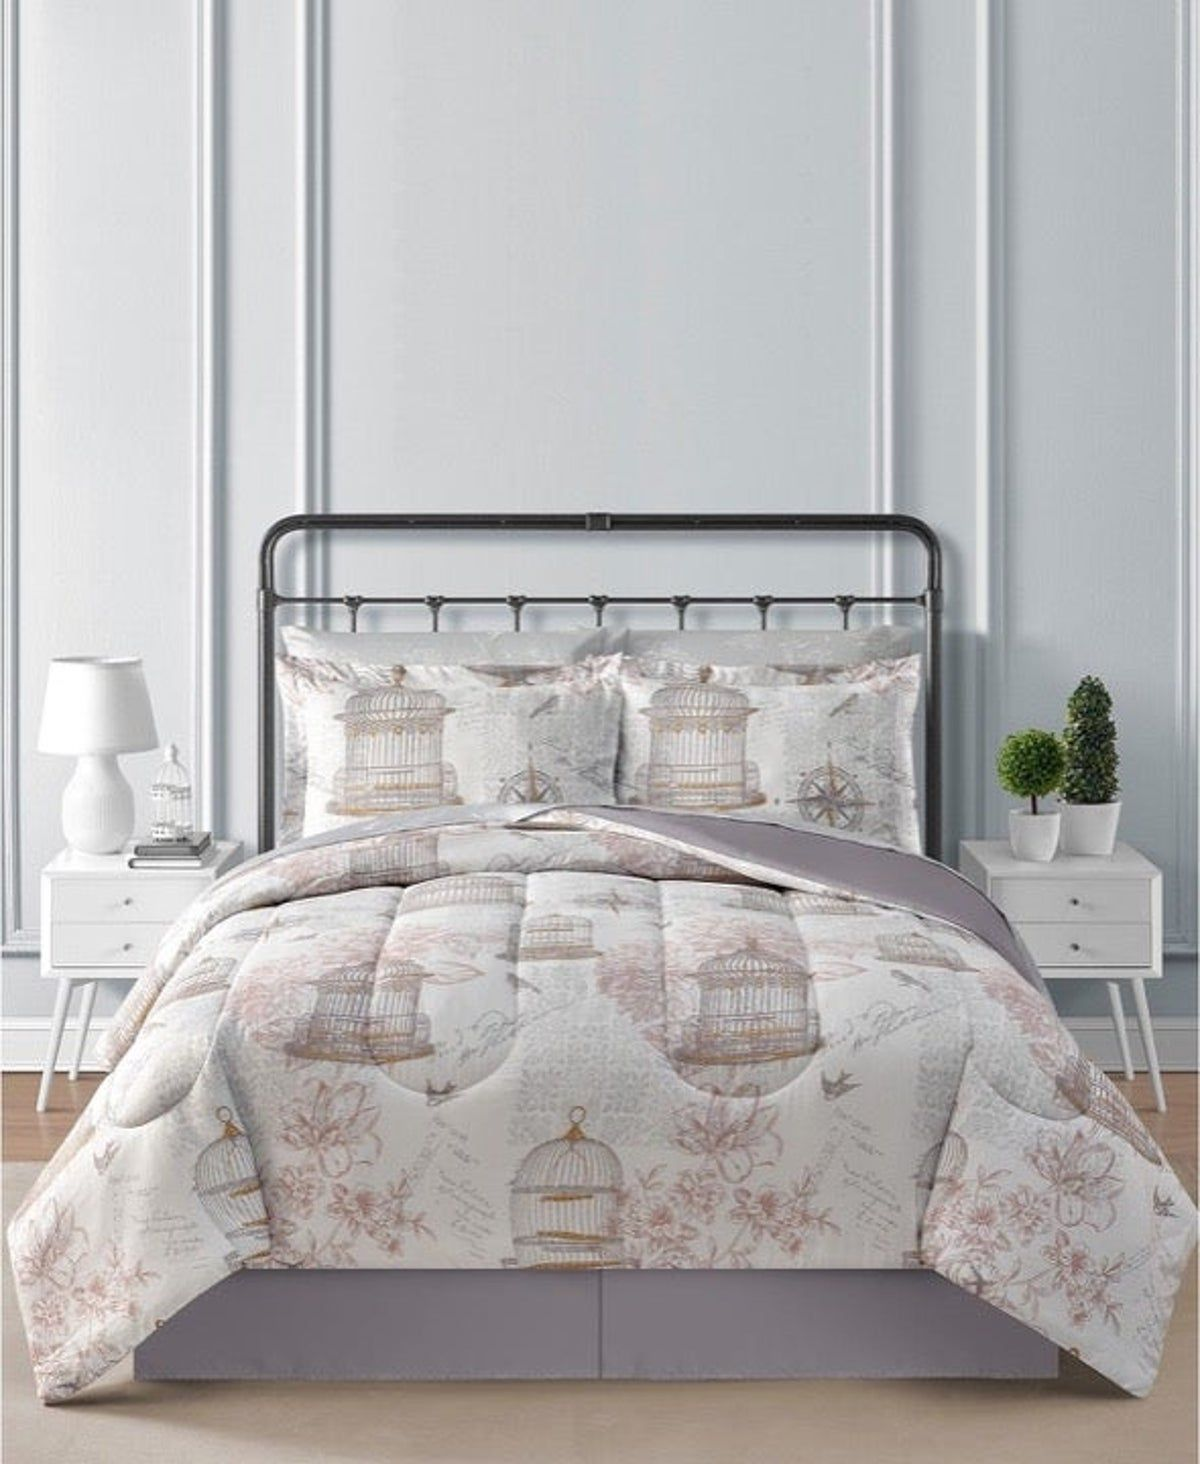 Bird cage Luxury 8-Pc. Comforter Bed Set